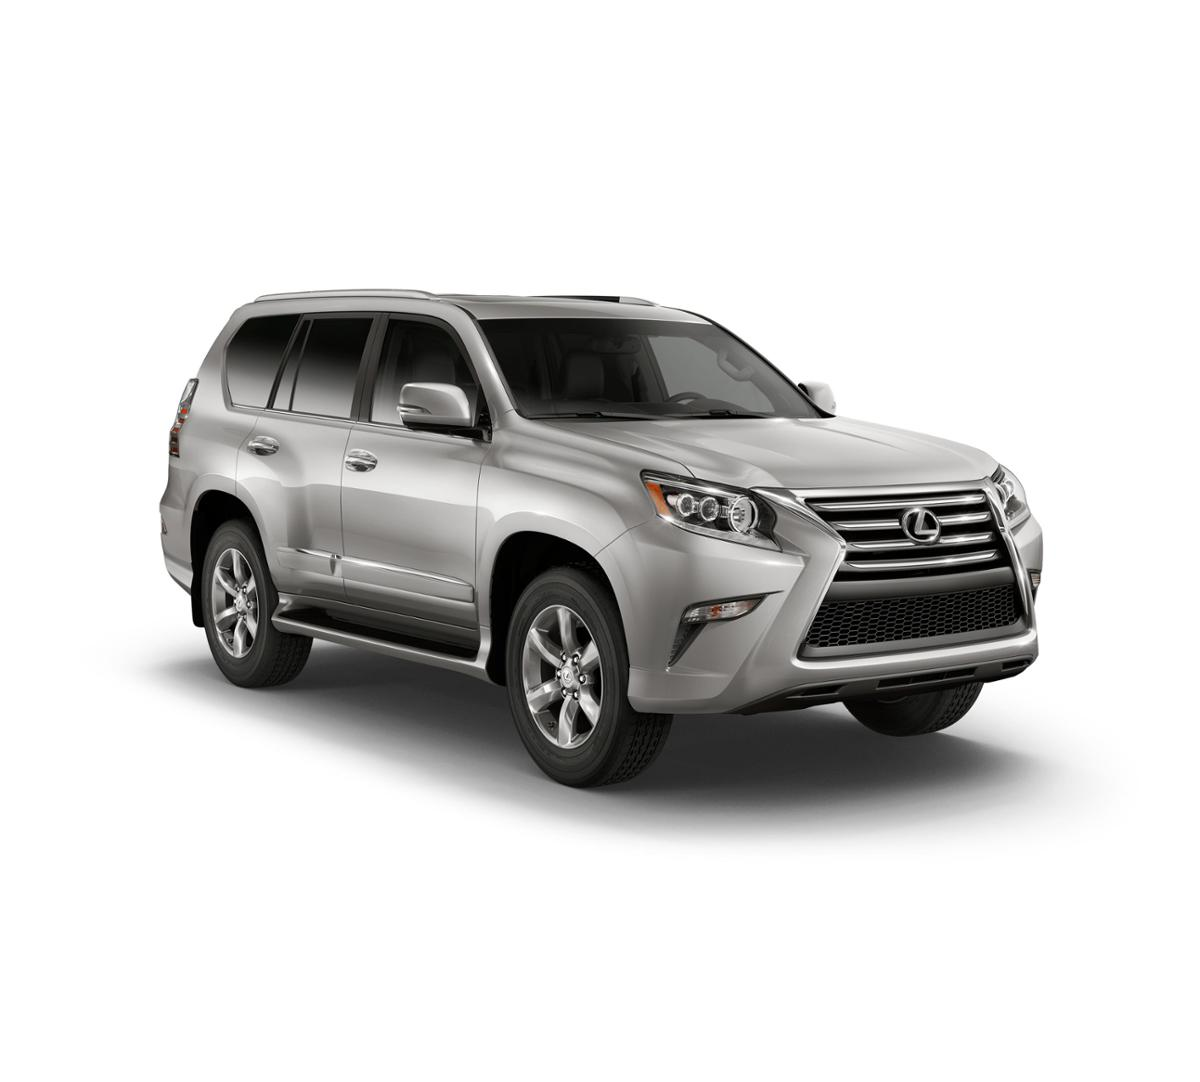 2017 Lexus GX 460 Vehicle Photo in El Monte, CA 91731